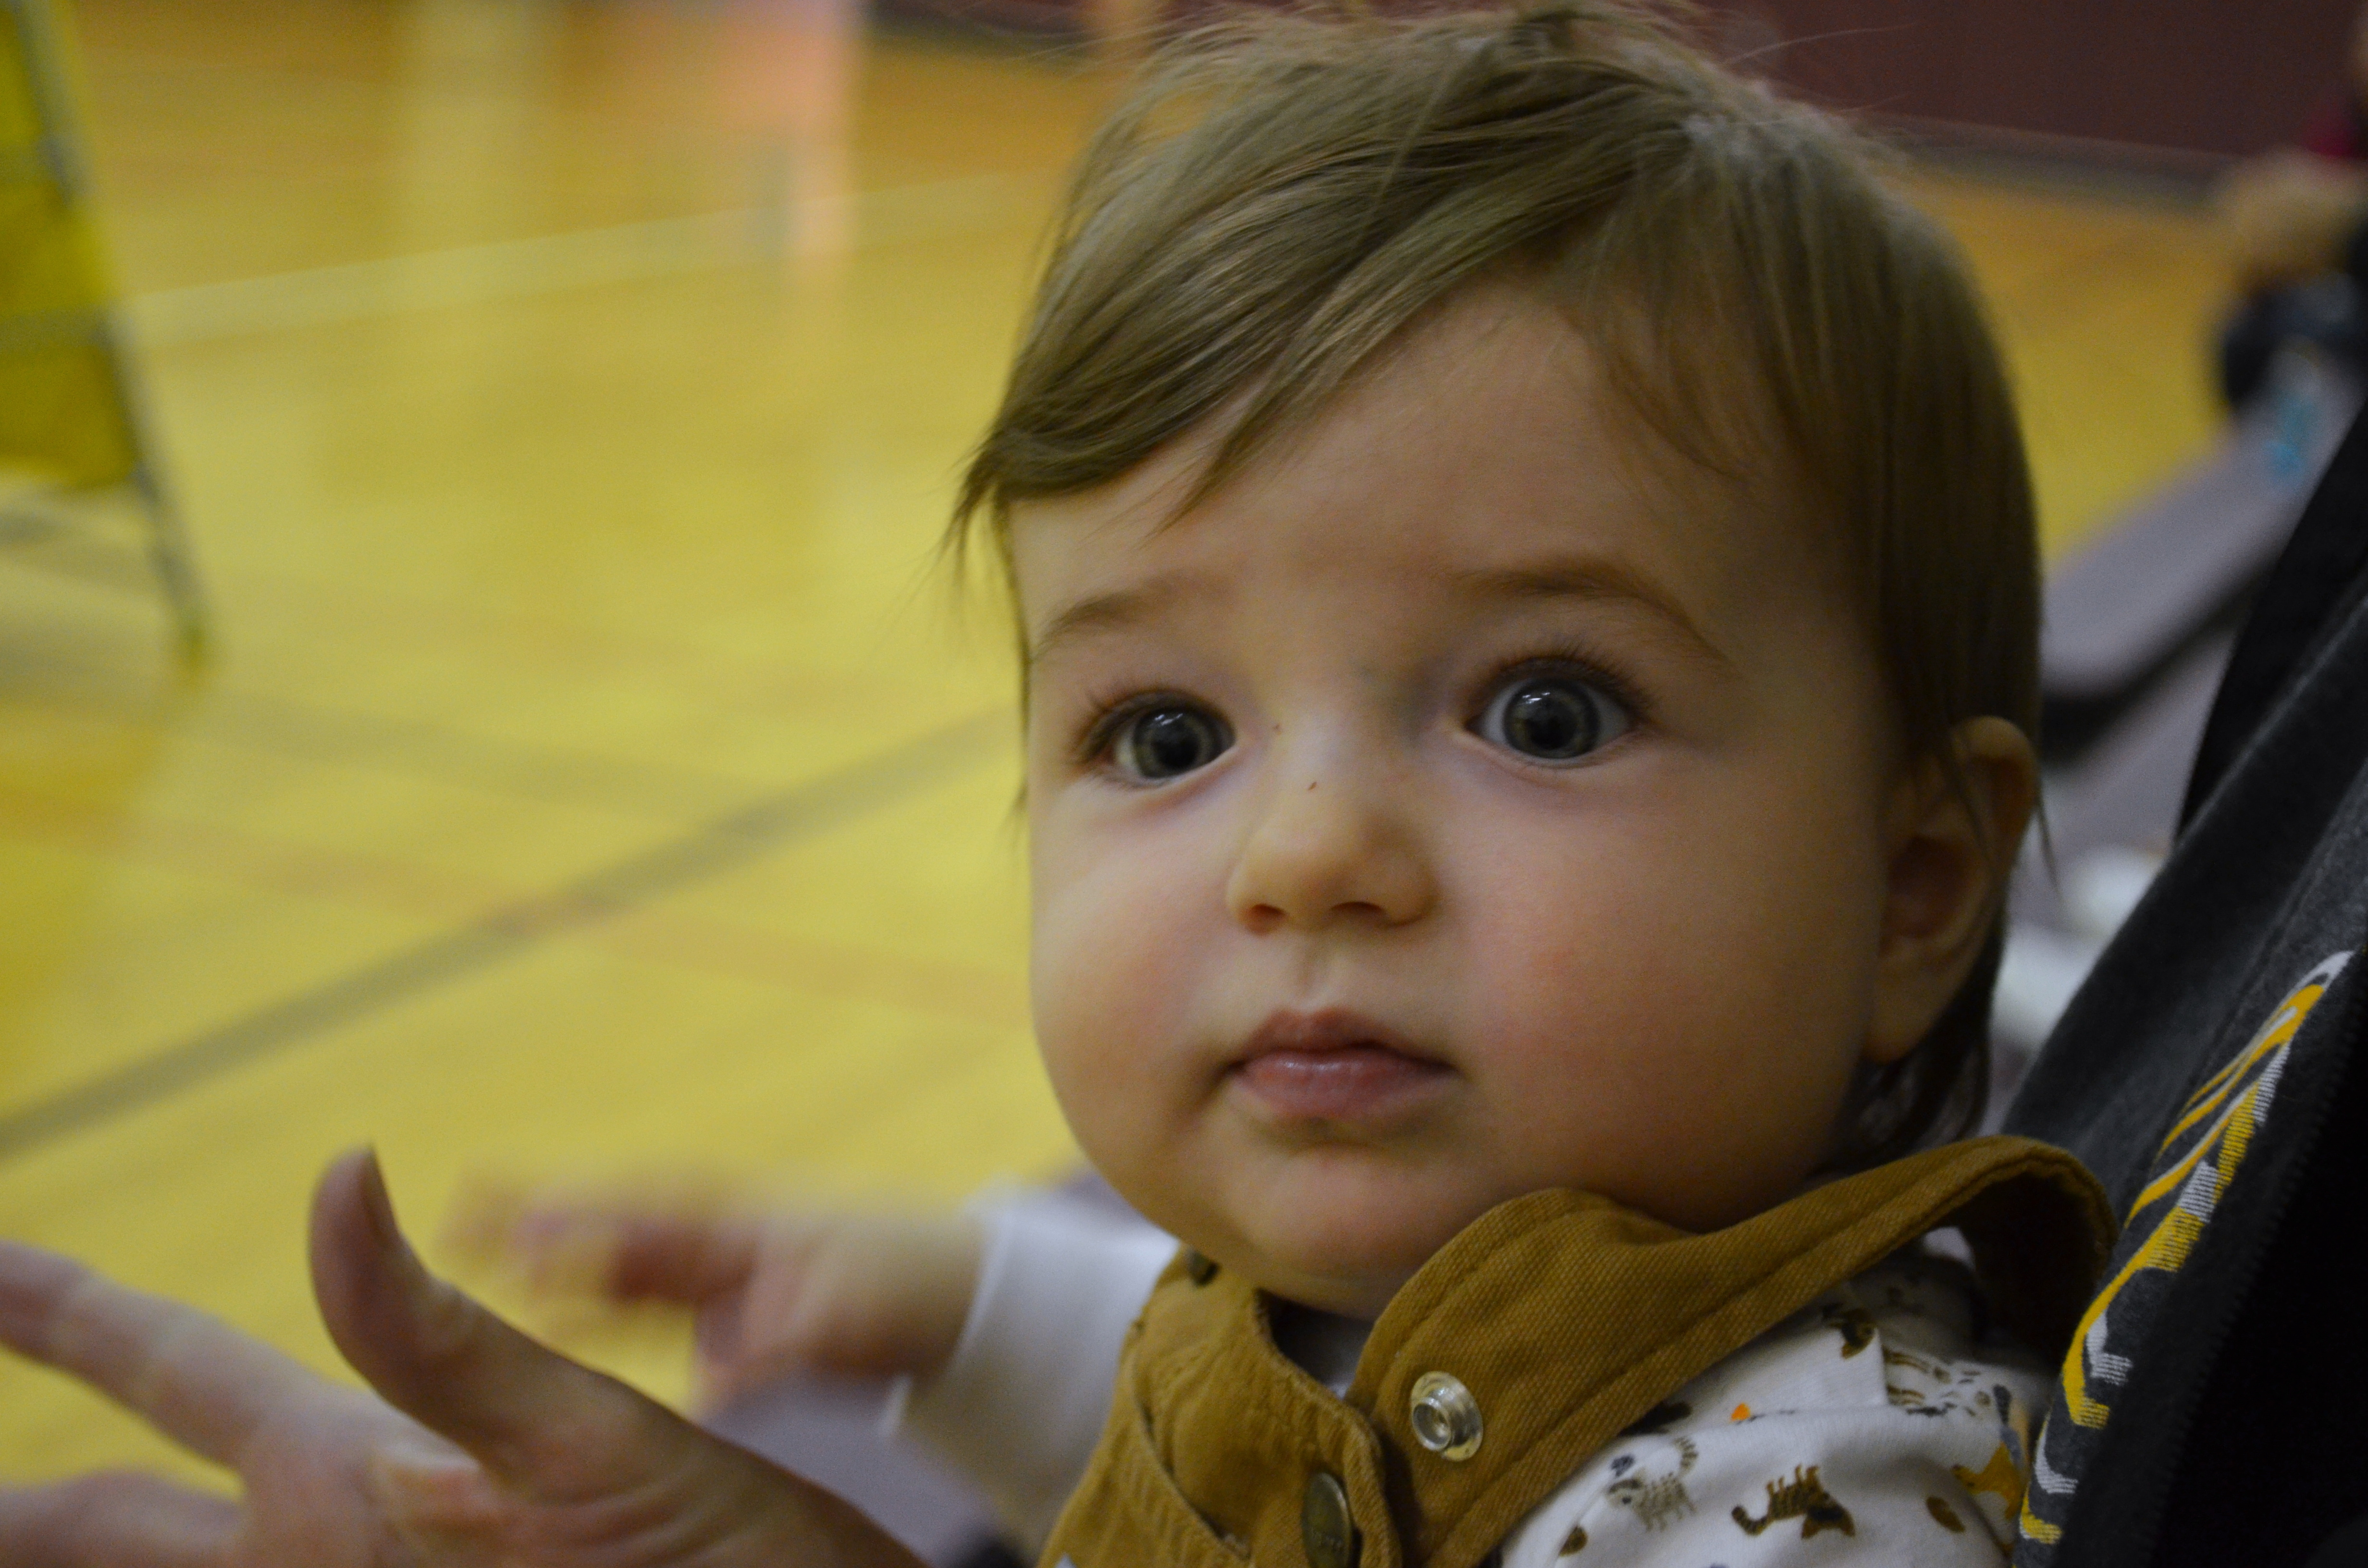 jenson at volleyball game